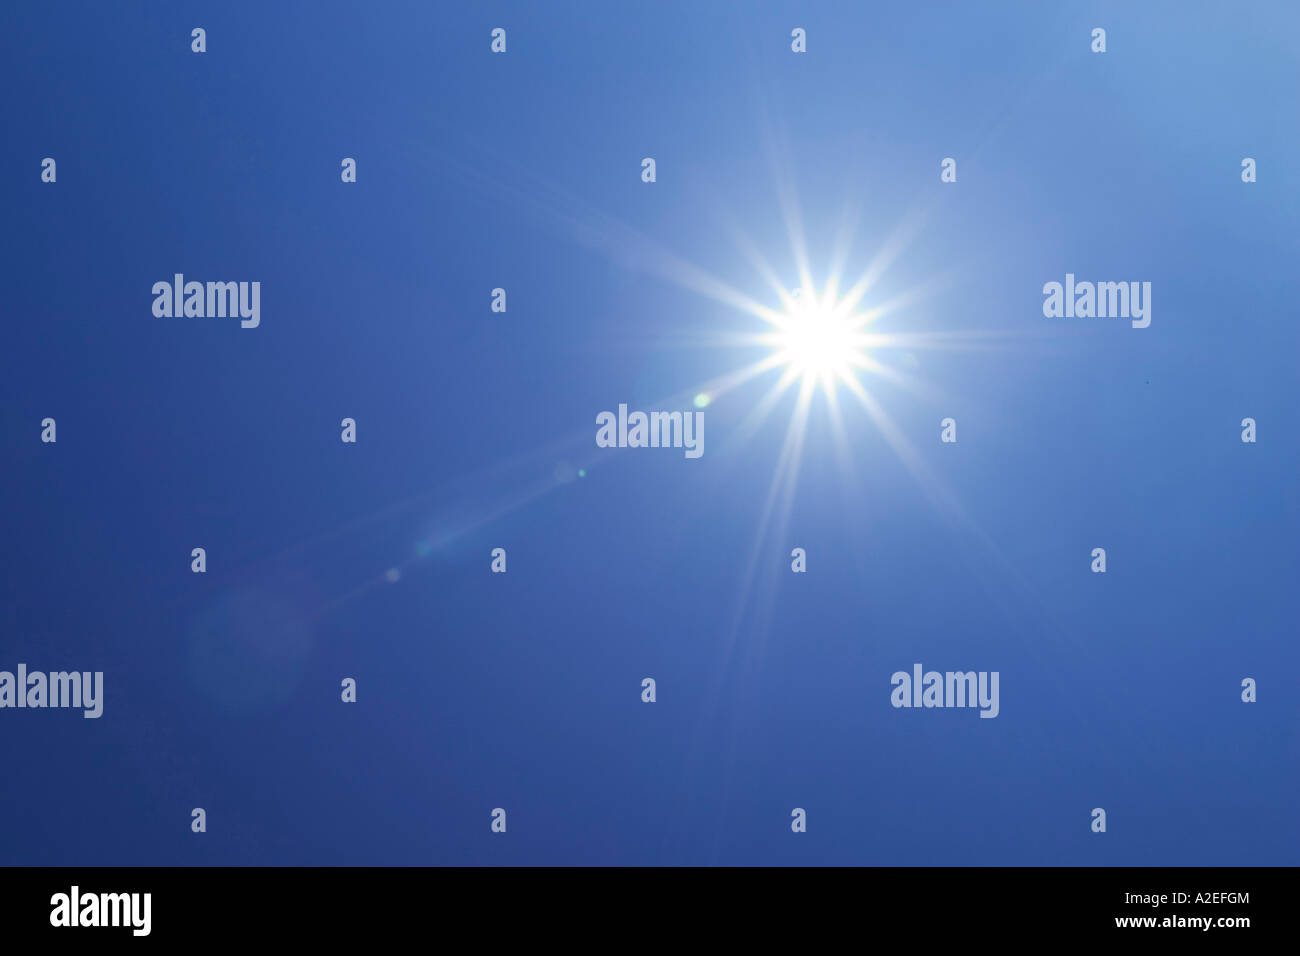 sun shining high in the sky with a corona or ring of rays - Stock Image